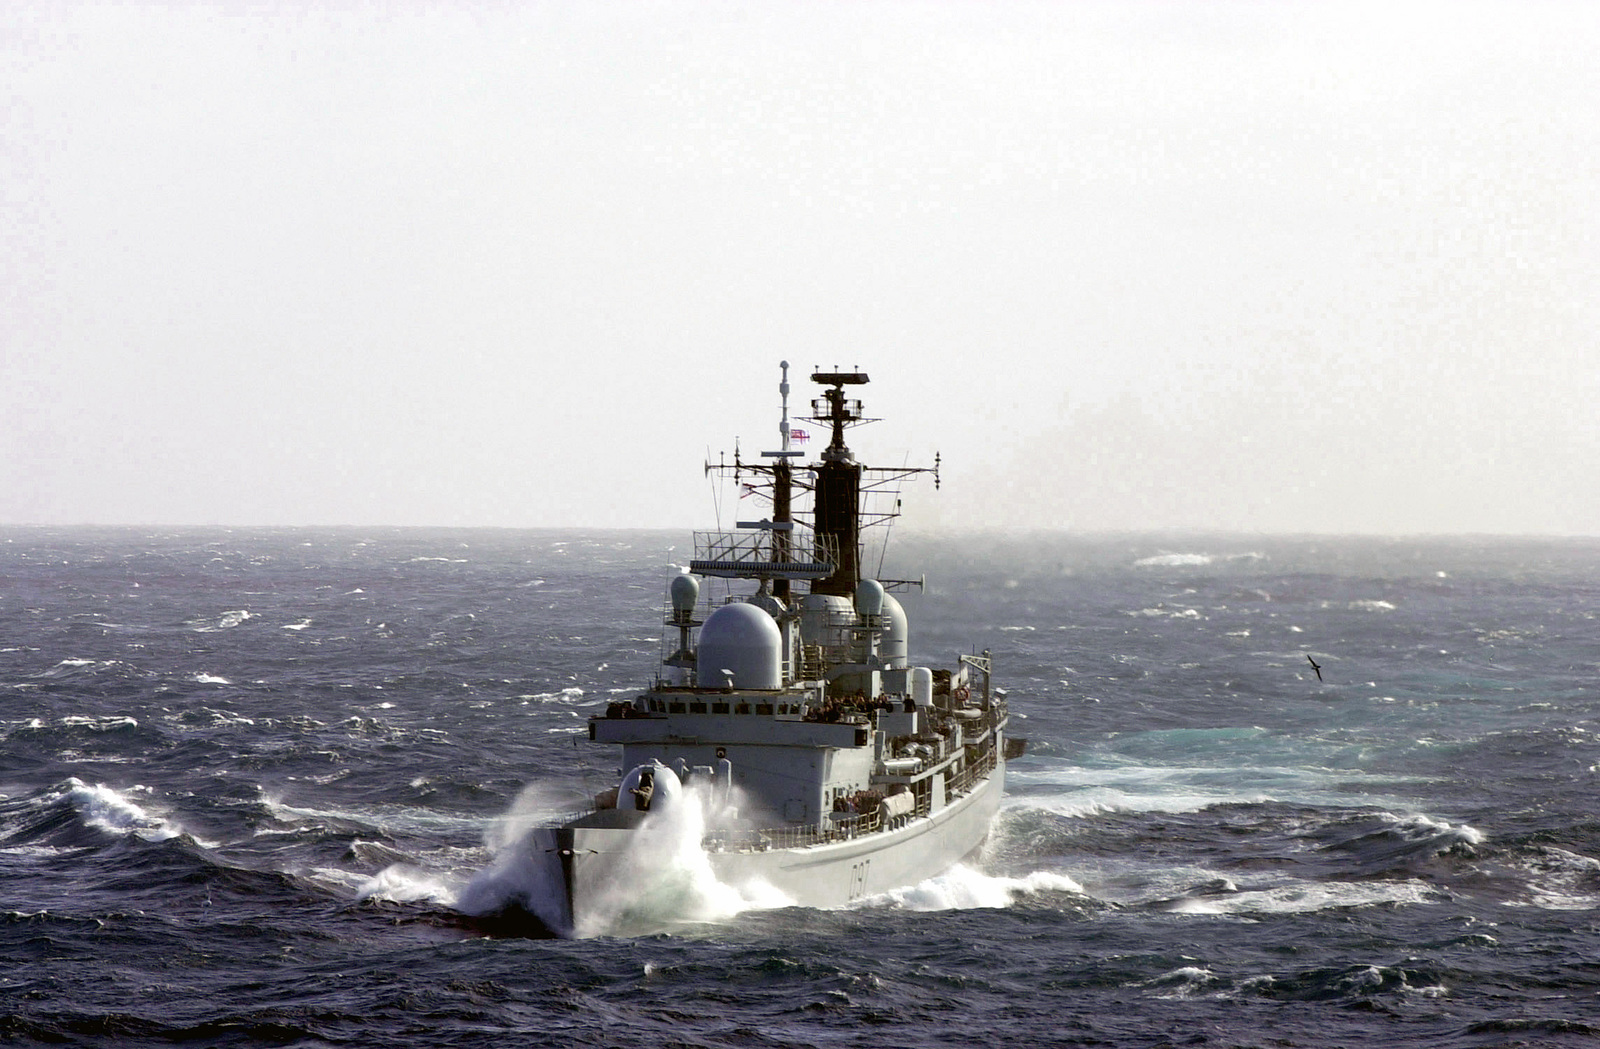 The bow port view of the Royal Navy Type 42 Class (DDG) Destroyer Her Majestys Ship (HMS) EDINBURGH (D 97) underway